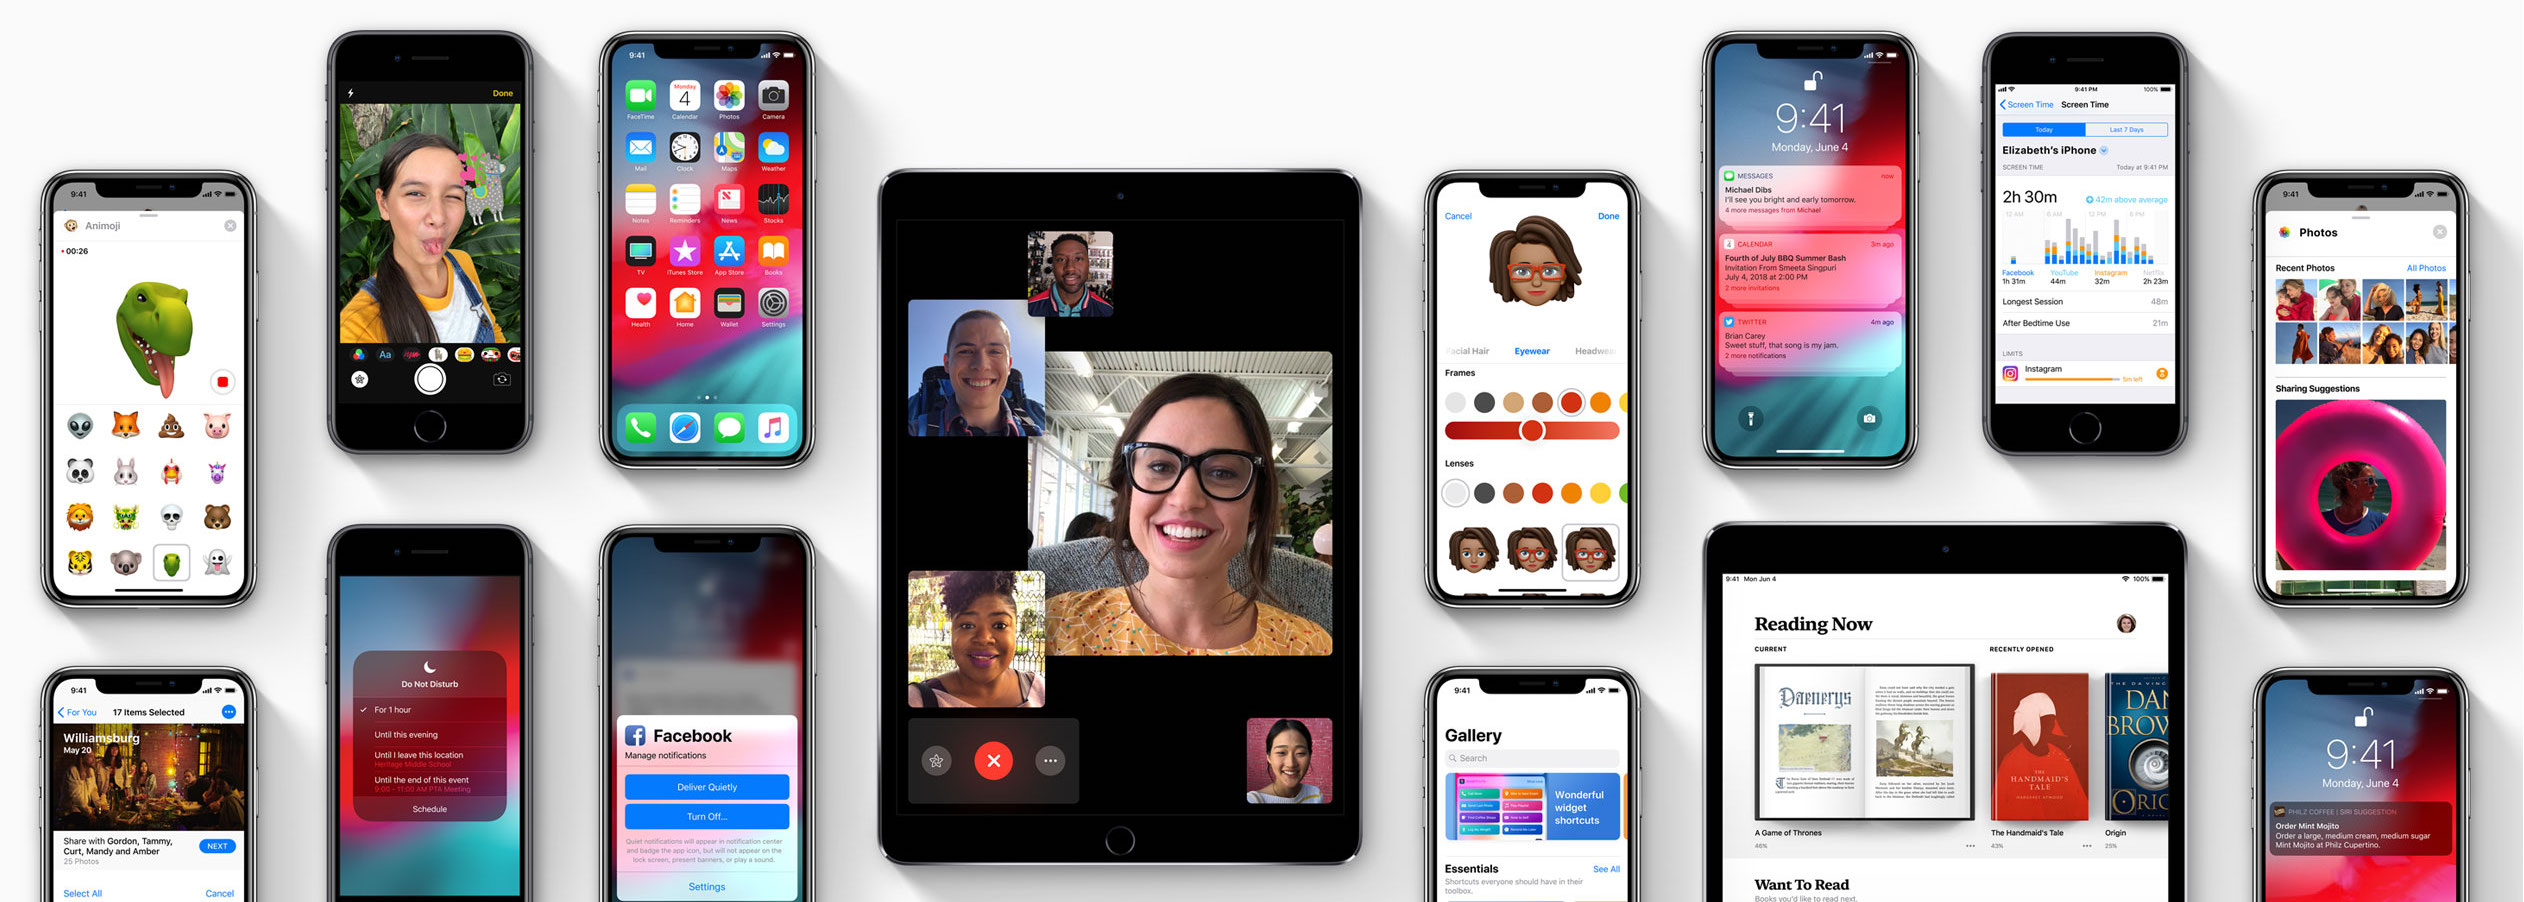 iOS 12 includes new iPhone USB data security protections